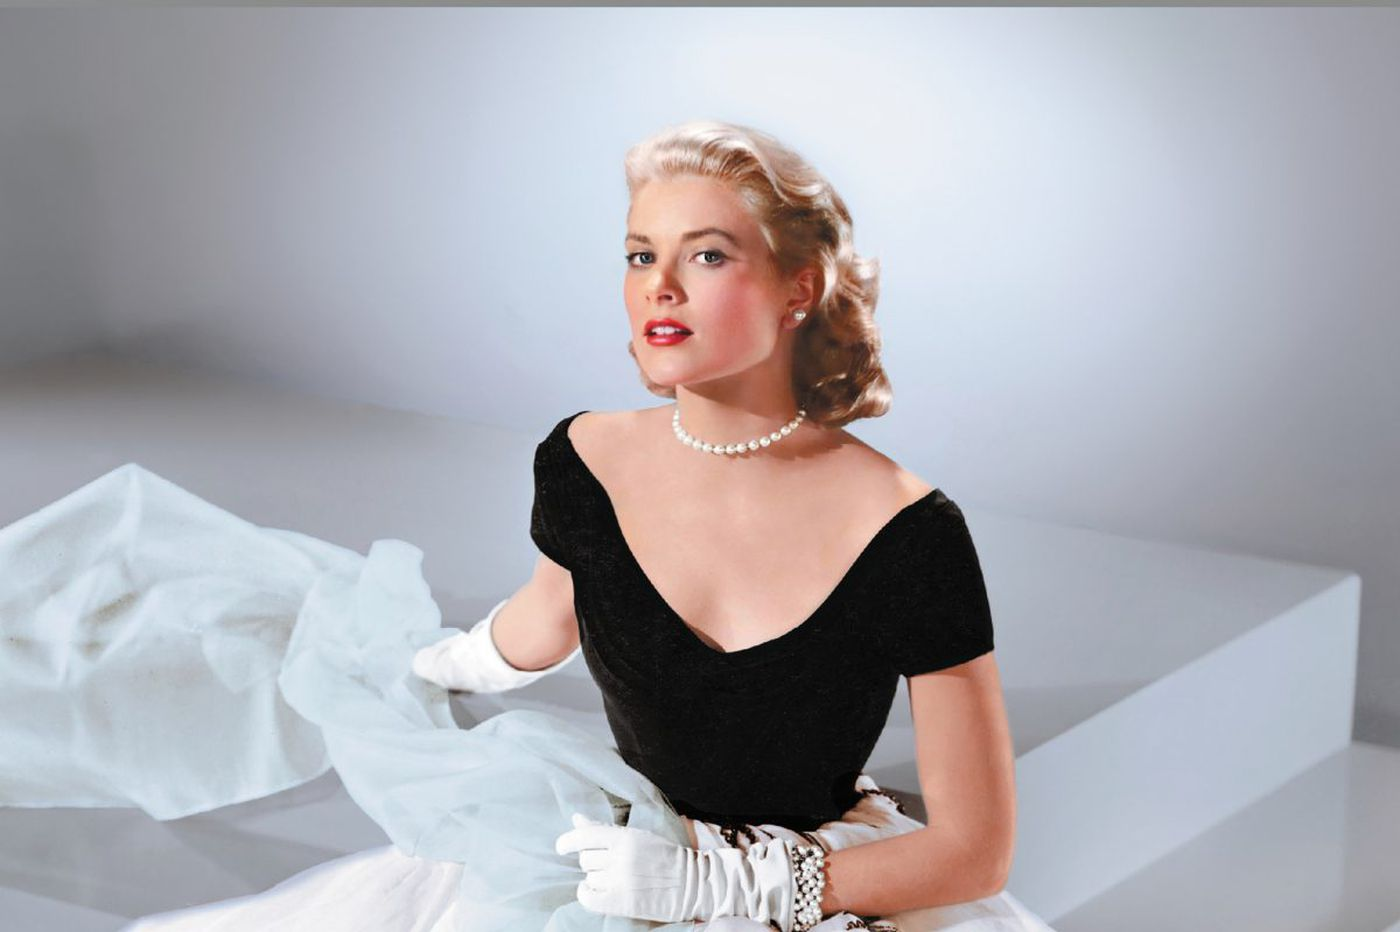 From Grace Kelly to the humble spoon, coffee-table books cry out to be gifted